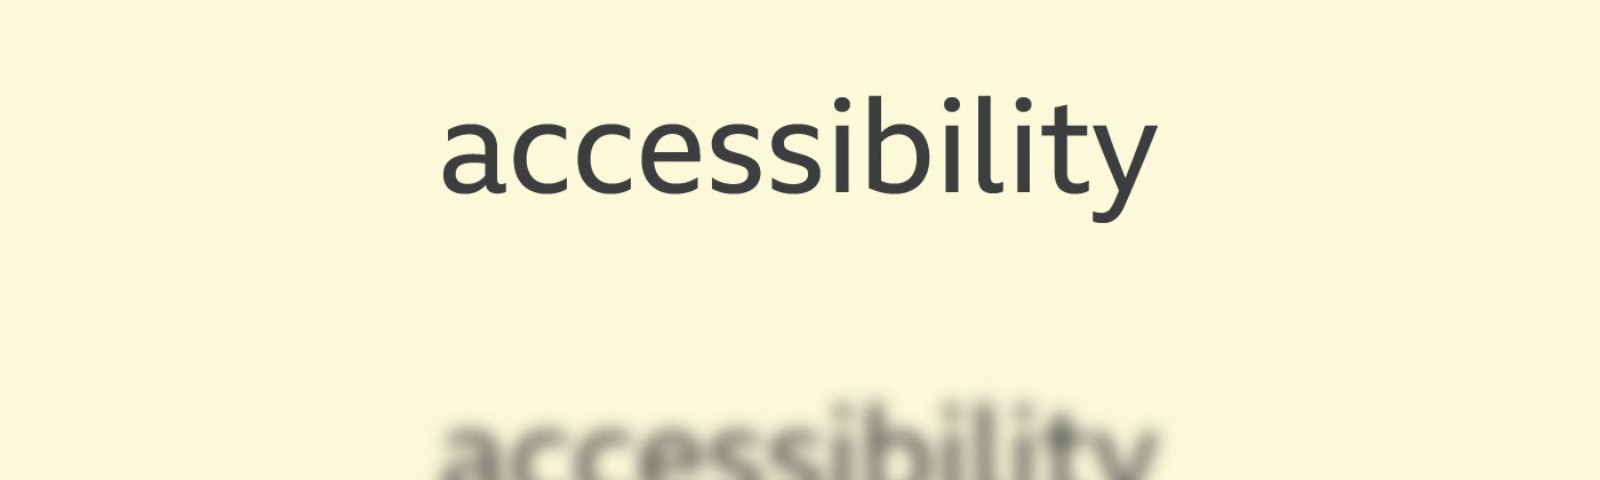 The word Accessibility rendered both in and out of focus